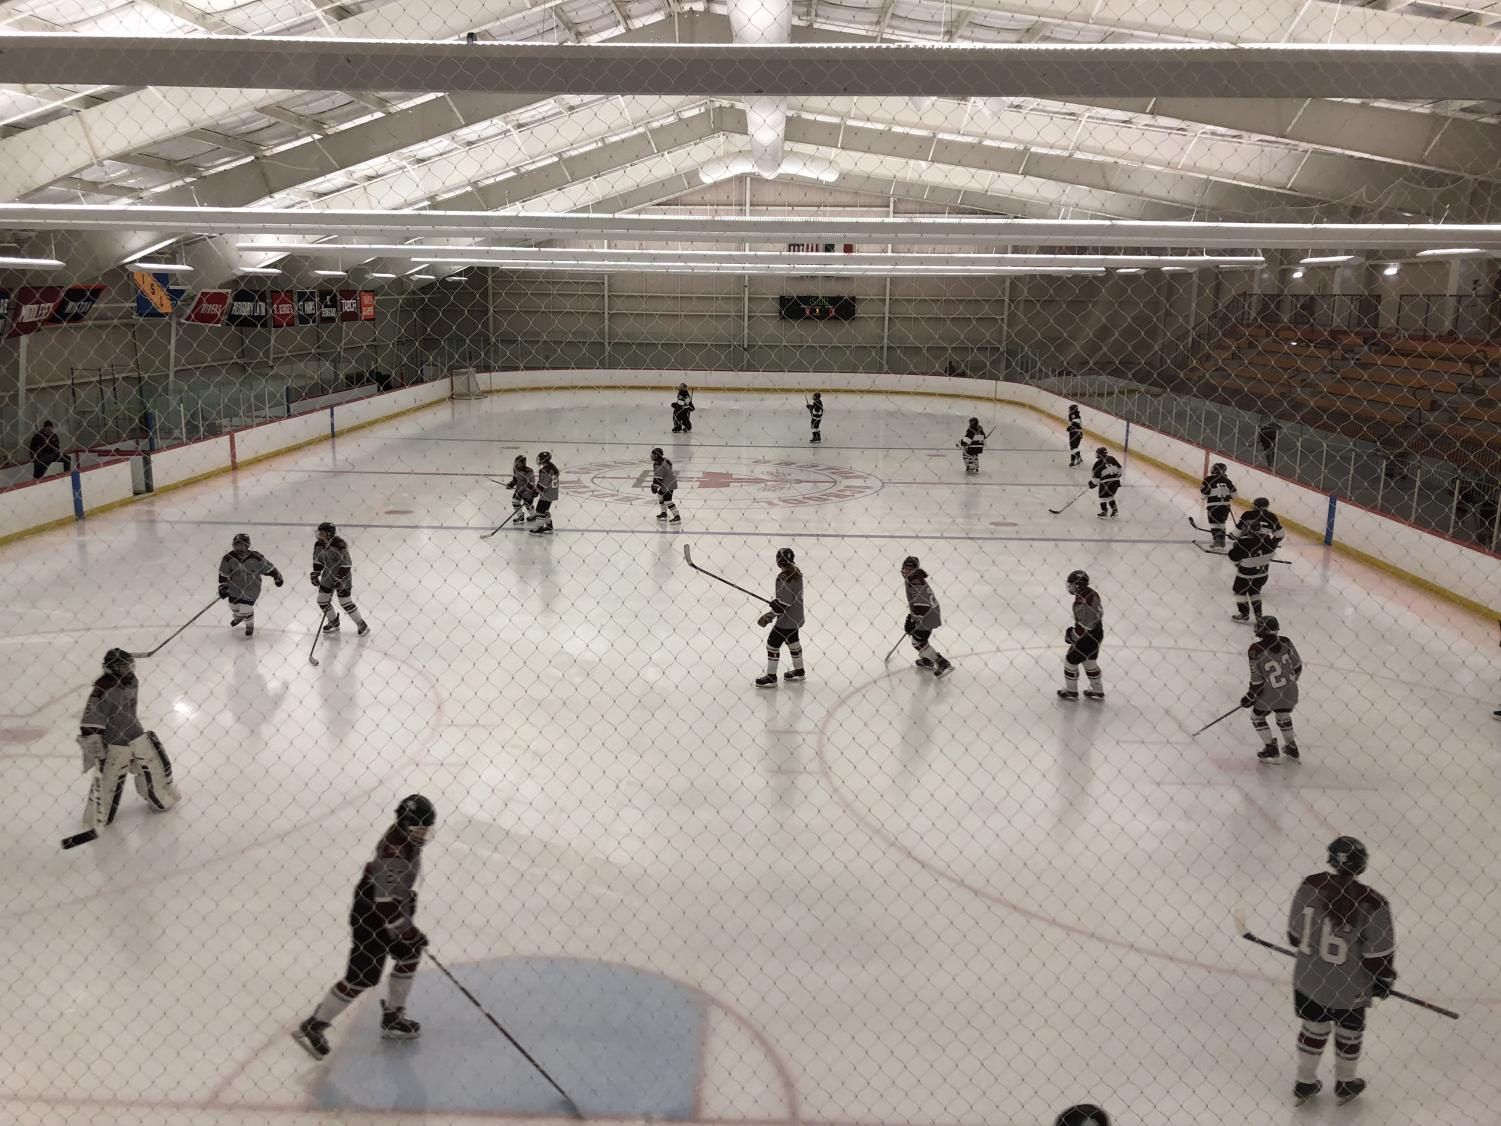 The WA Girls' Hockey Team warms up before the third period.